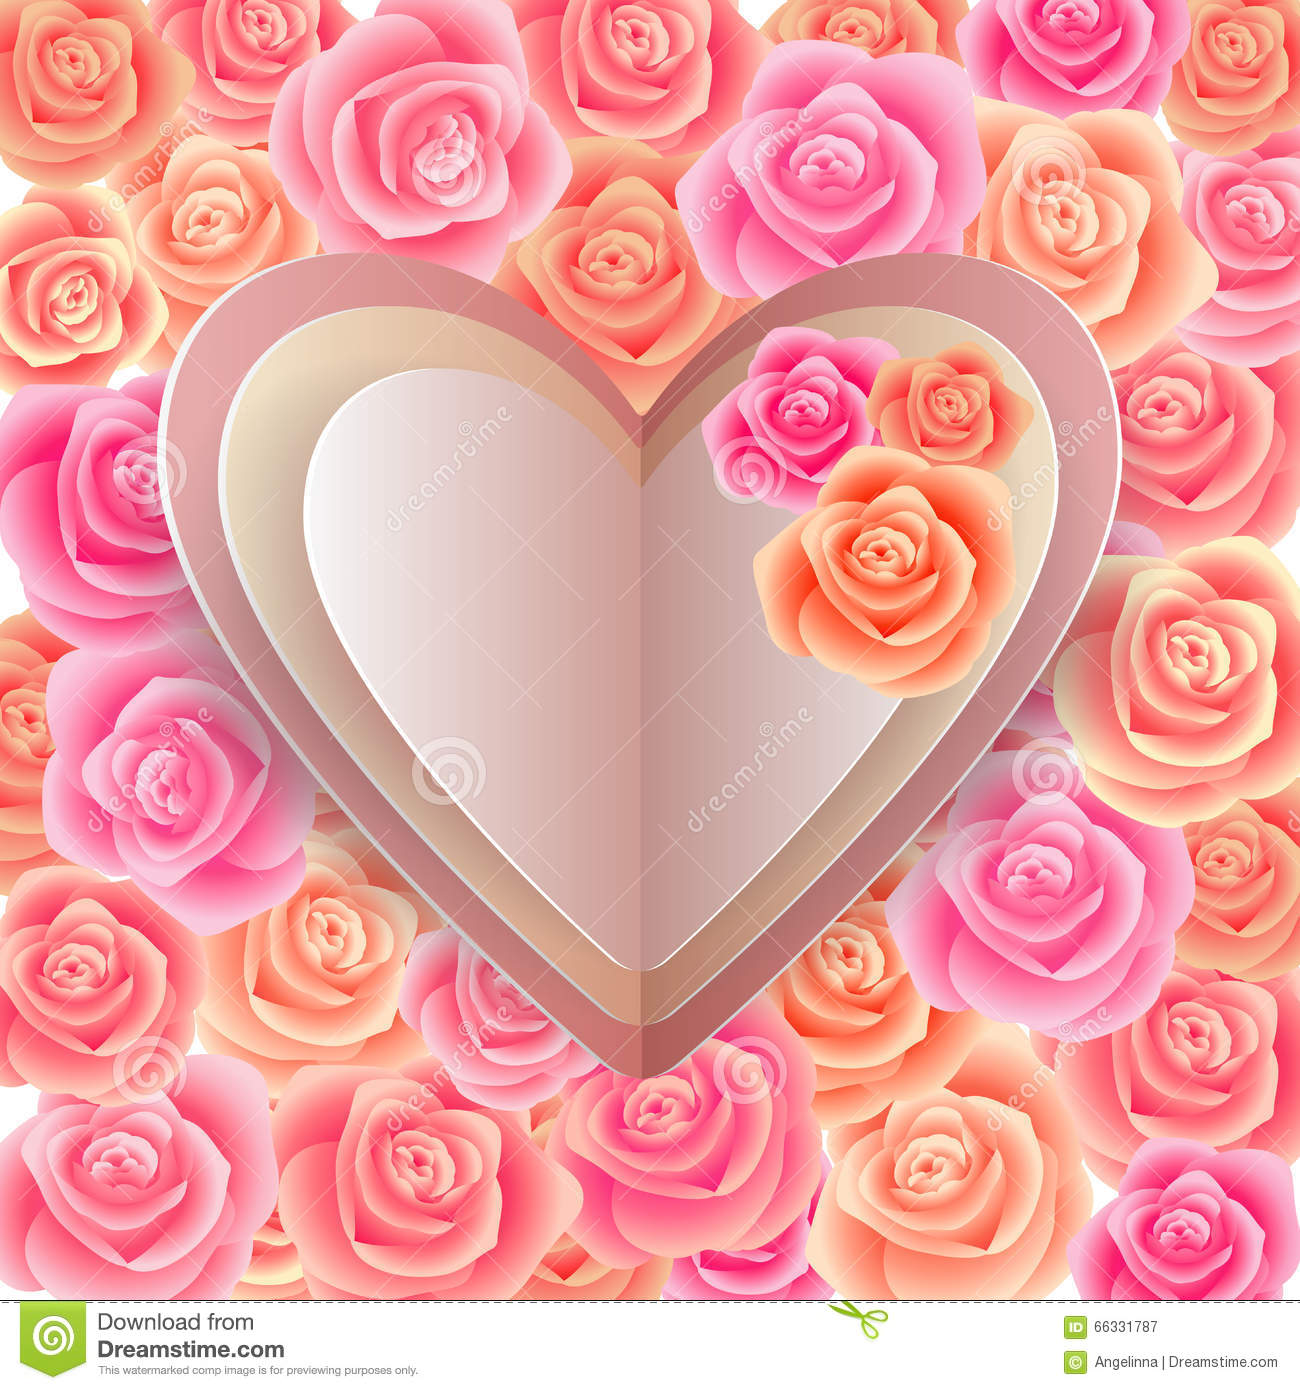 Paper Hearts With Rose Background Stock Vector Illustration Of